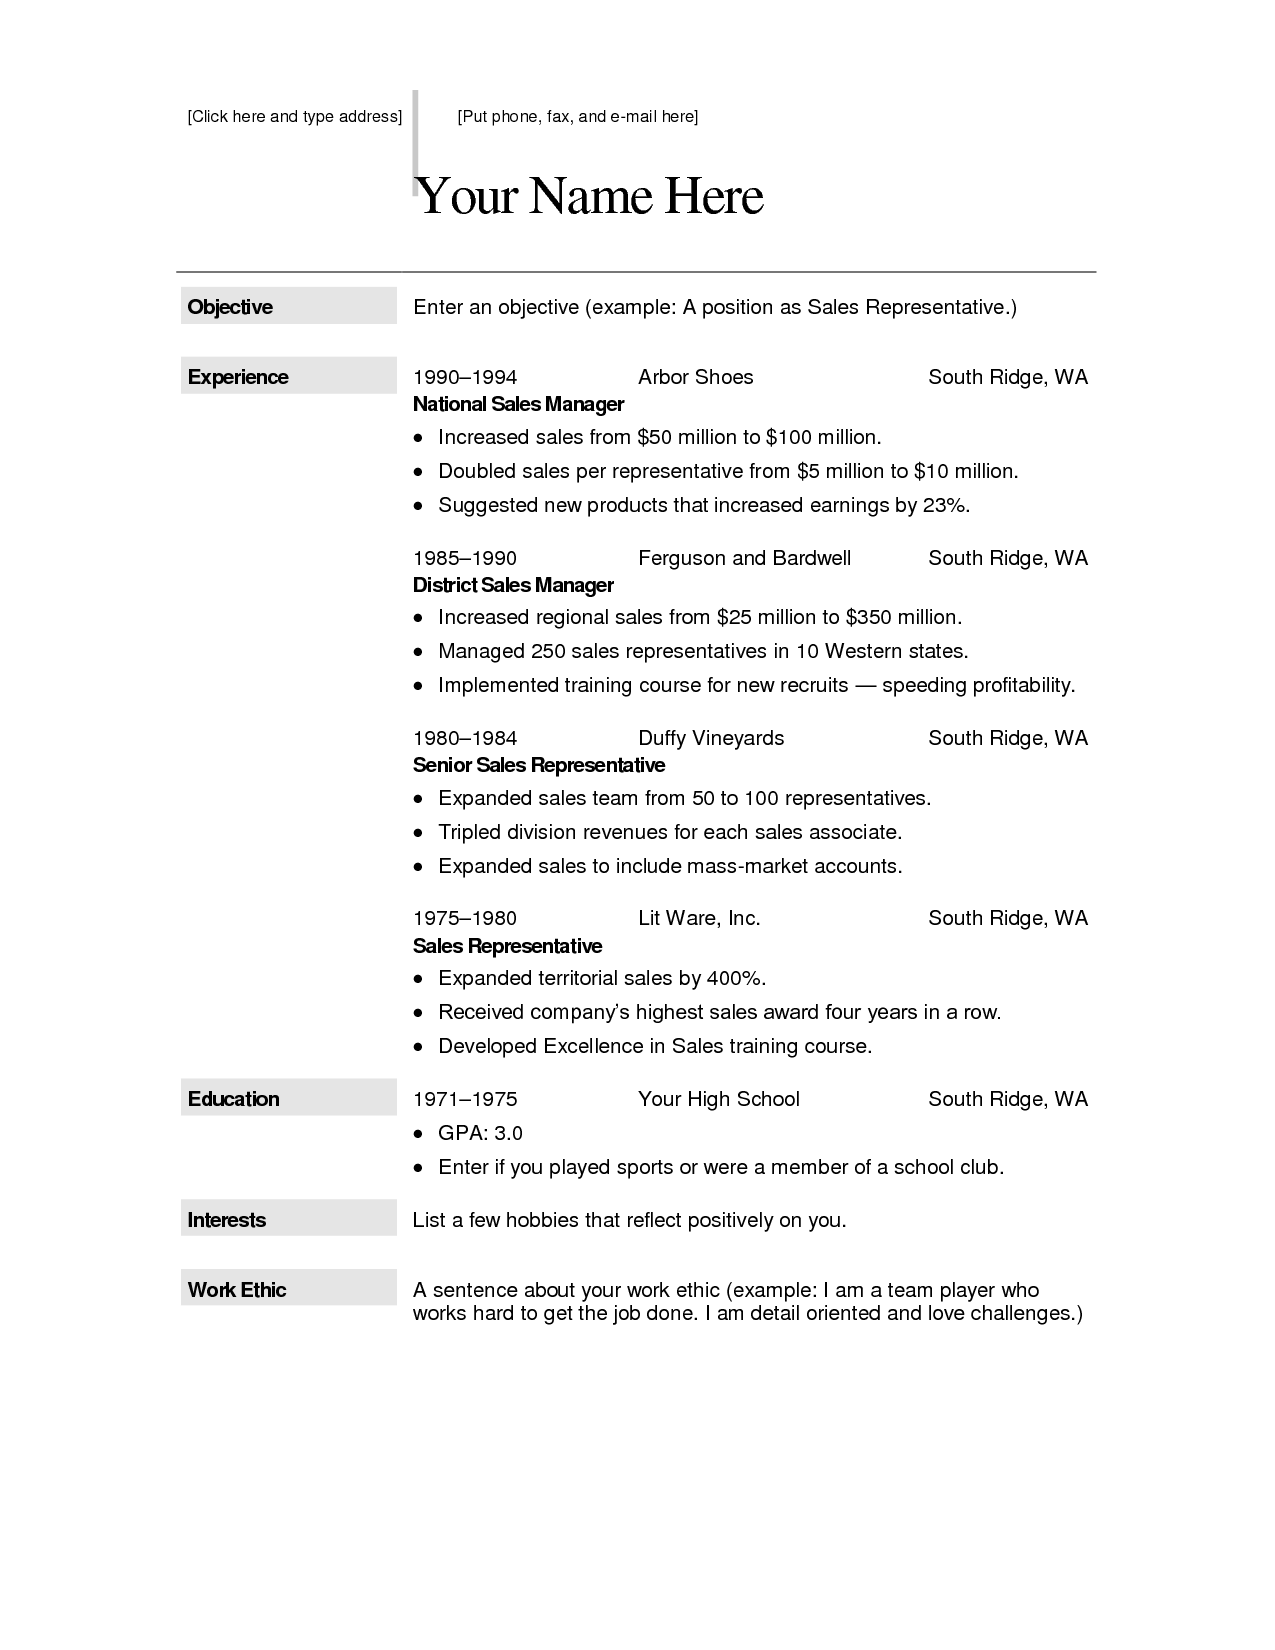 Amazing Free Usable Resume Templates Free Resume Templates, Free Blank Resume Free  Printable Resume Format Free Printable For, Resume Examples Free Usable  Resume ... For Resume Free Download